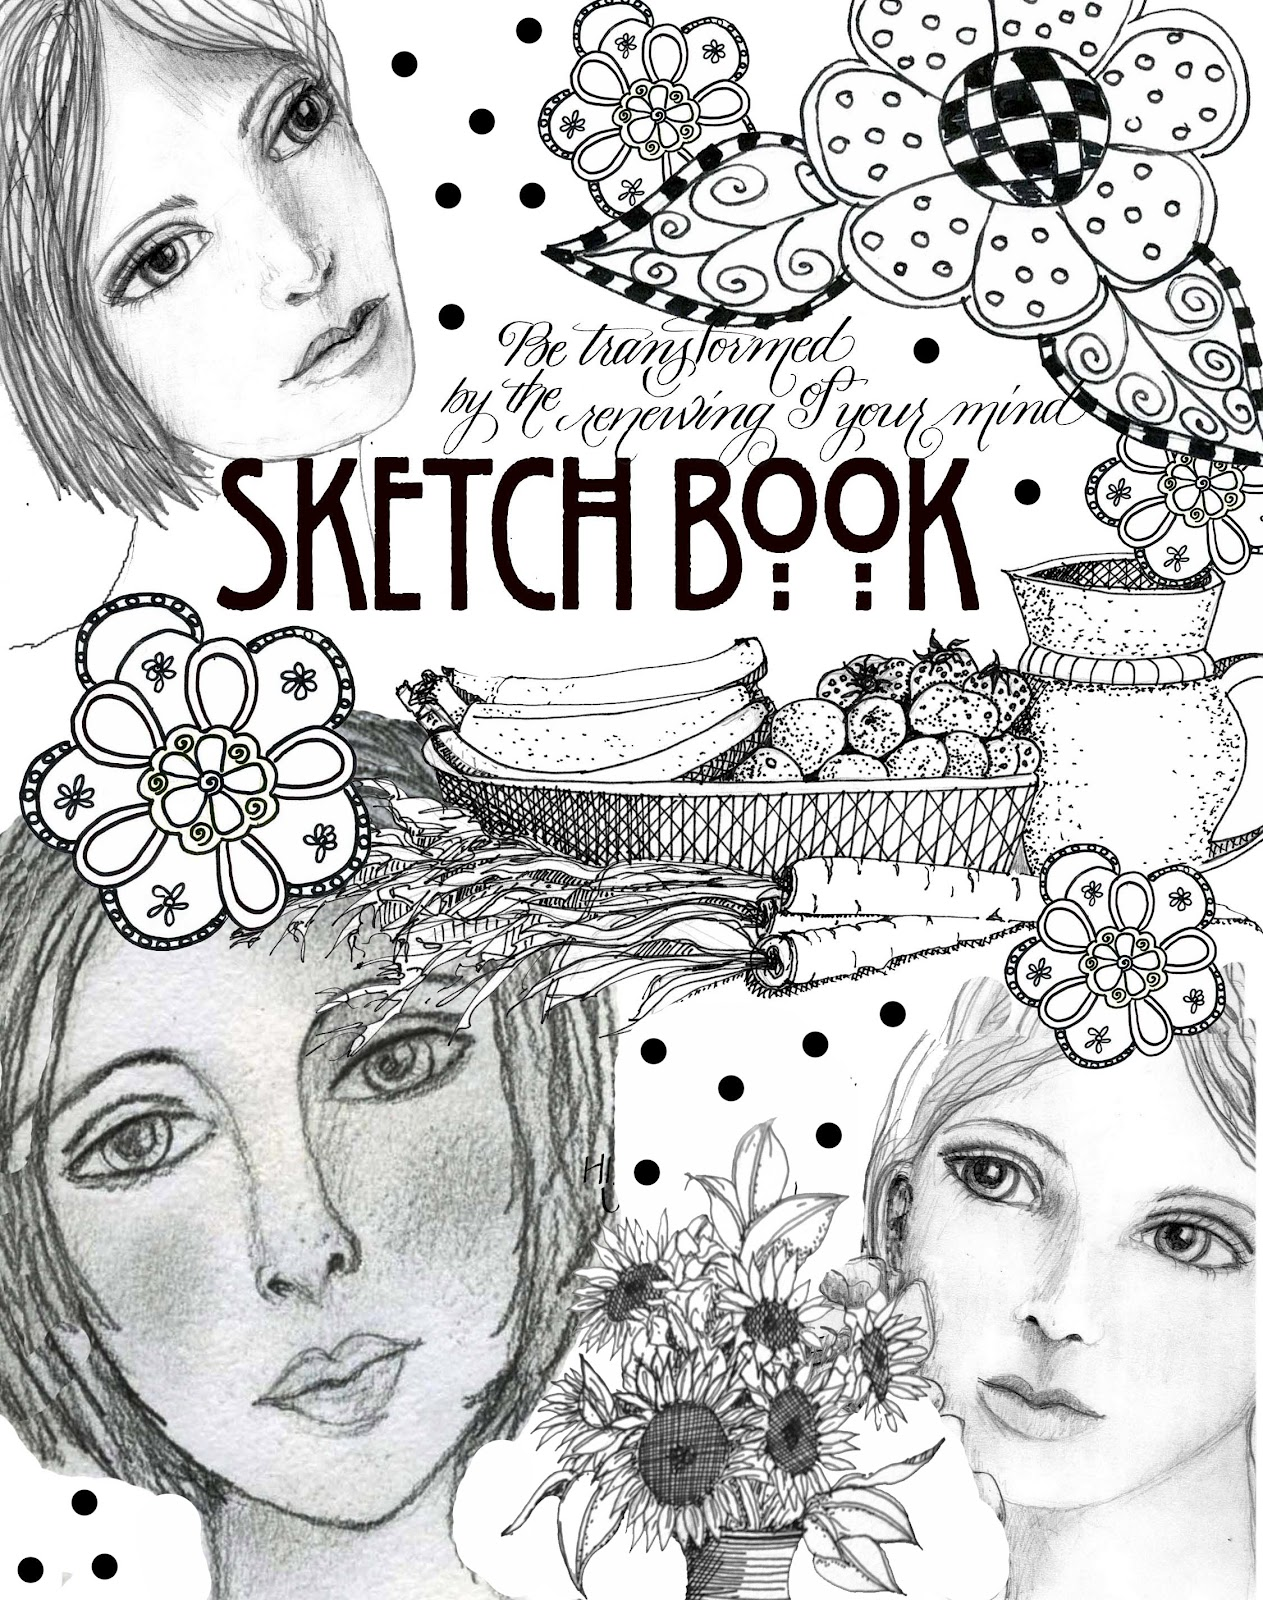 Sketch Book Cover ~ Art du jour by martha lever sketchbook cover